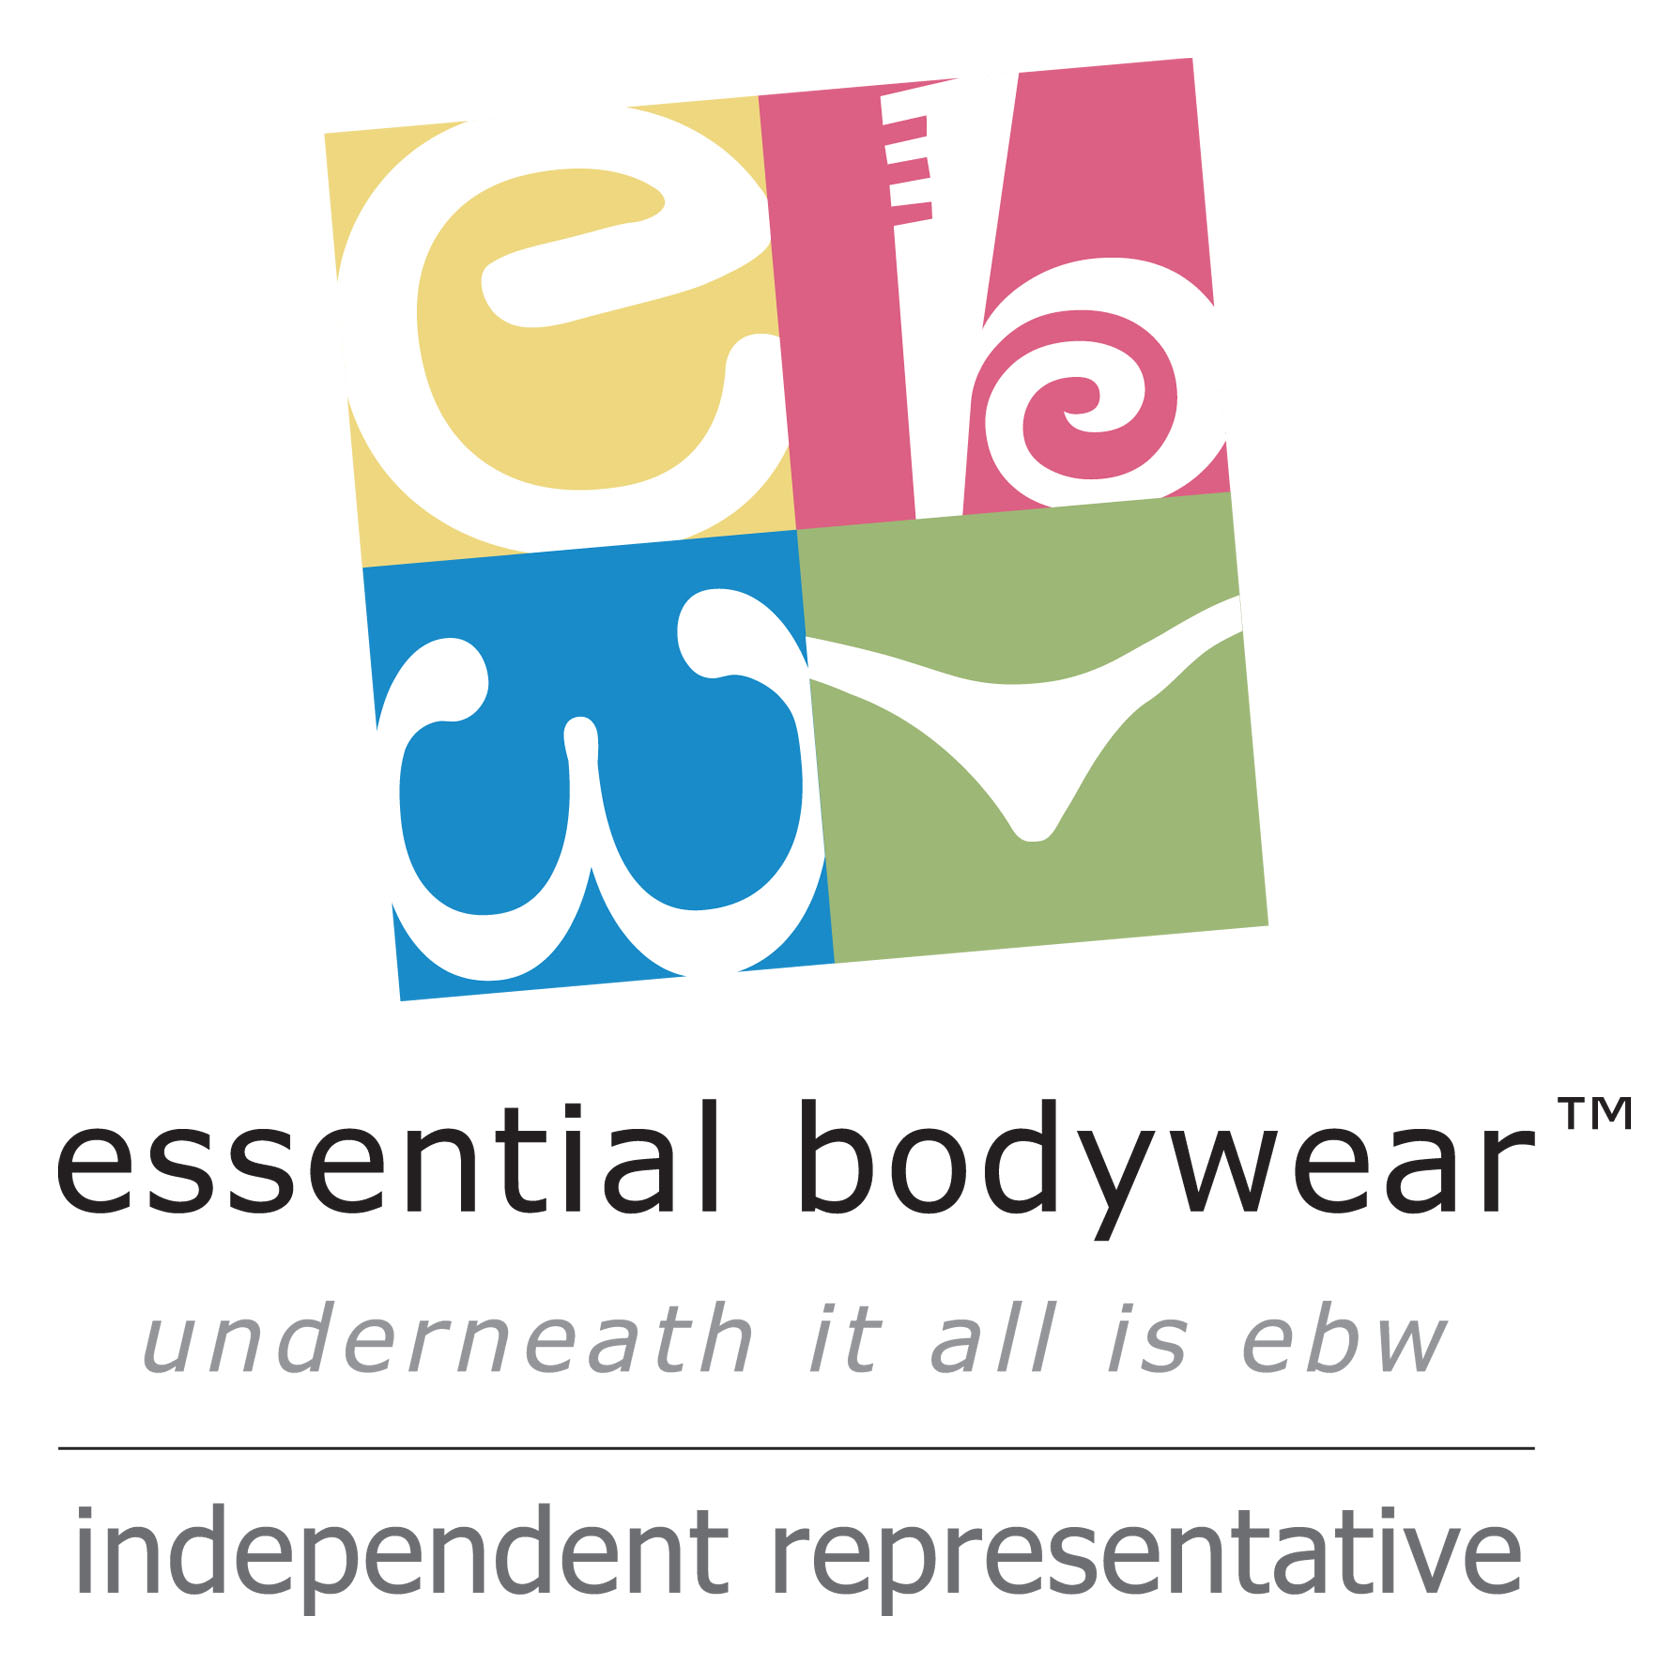 8f0bdc8a52d I have been a professional bra fitter with Essential Bodywear for more than  two years. I love helping women in the Triangle and beyond look and feel  their ...